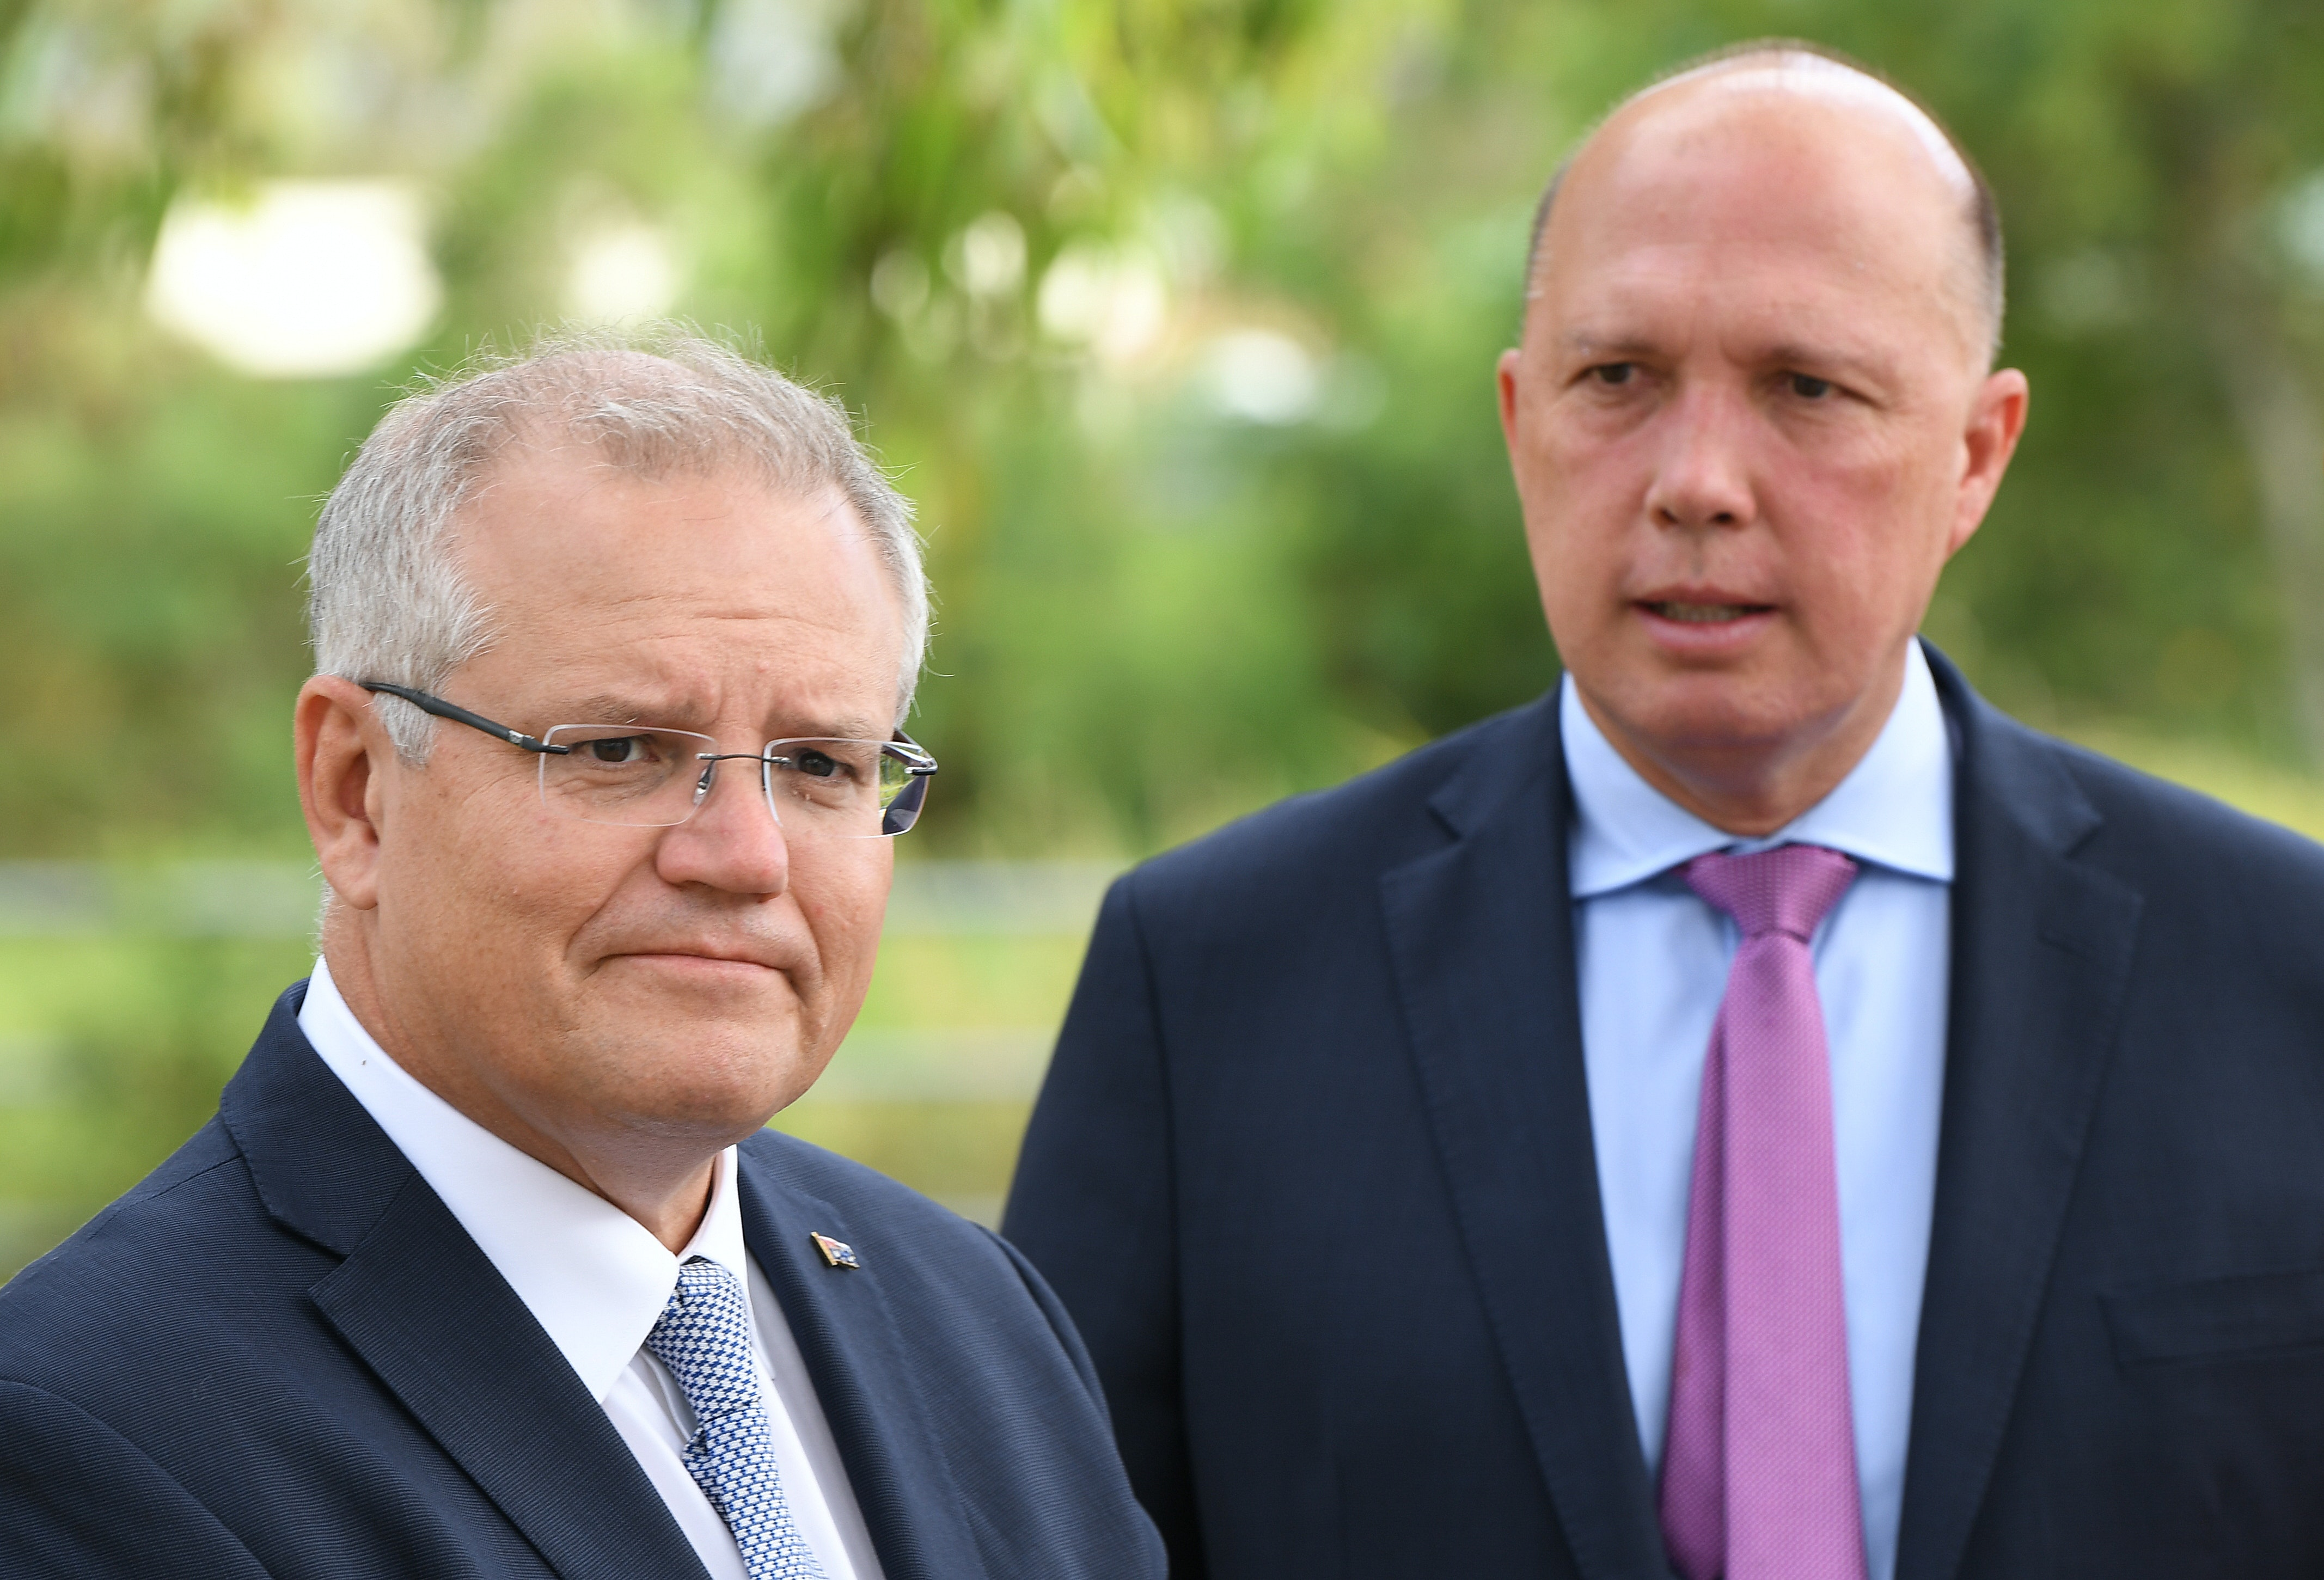 Morrison flags new laws to stop social media platforms being 'weaponised'